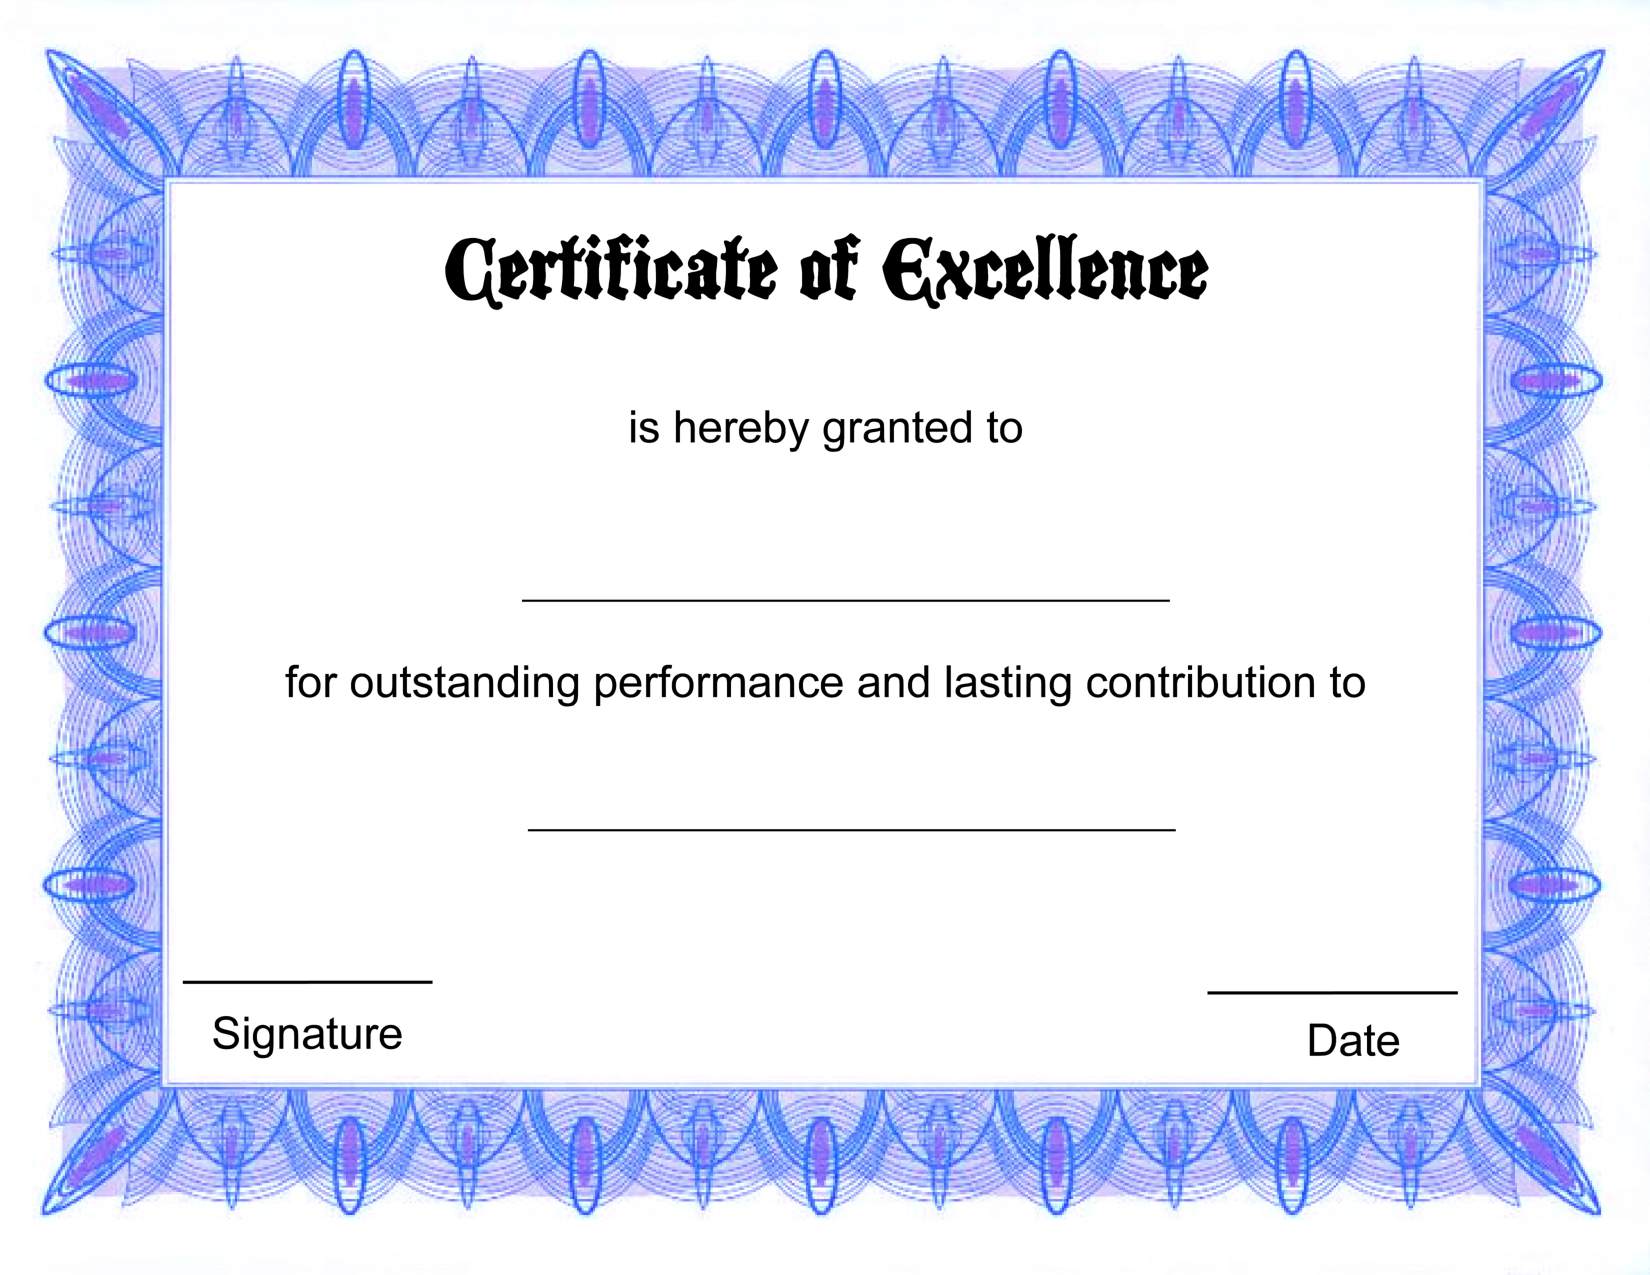 Blank Certificate Templates Of Excellence | Kiddo Shelter | Šįyyy - Free Printable Blank Certificate Templates